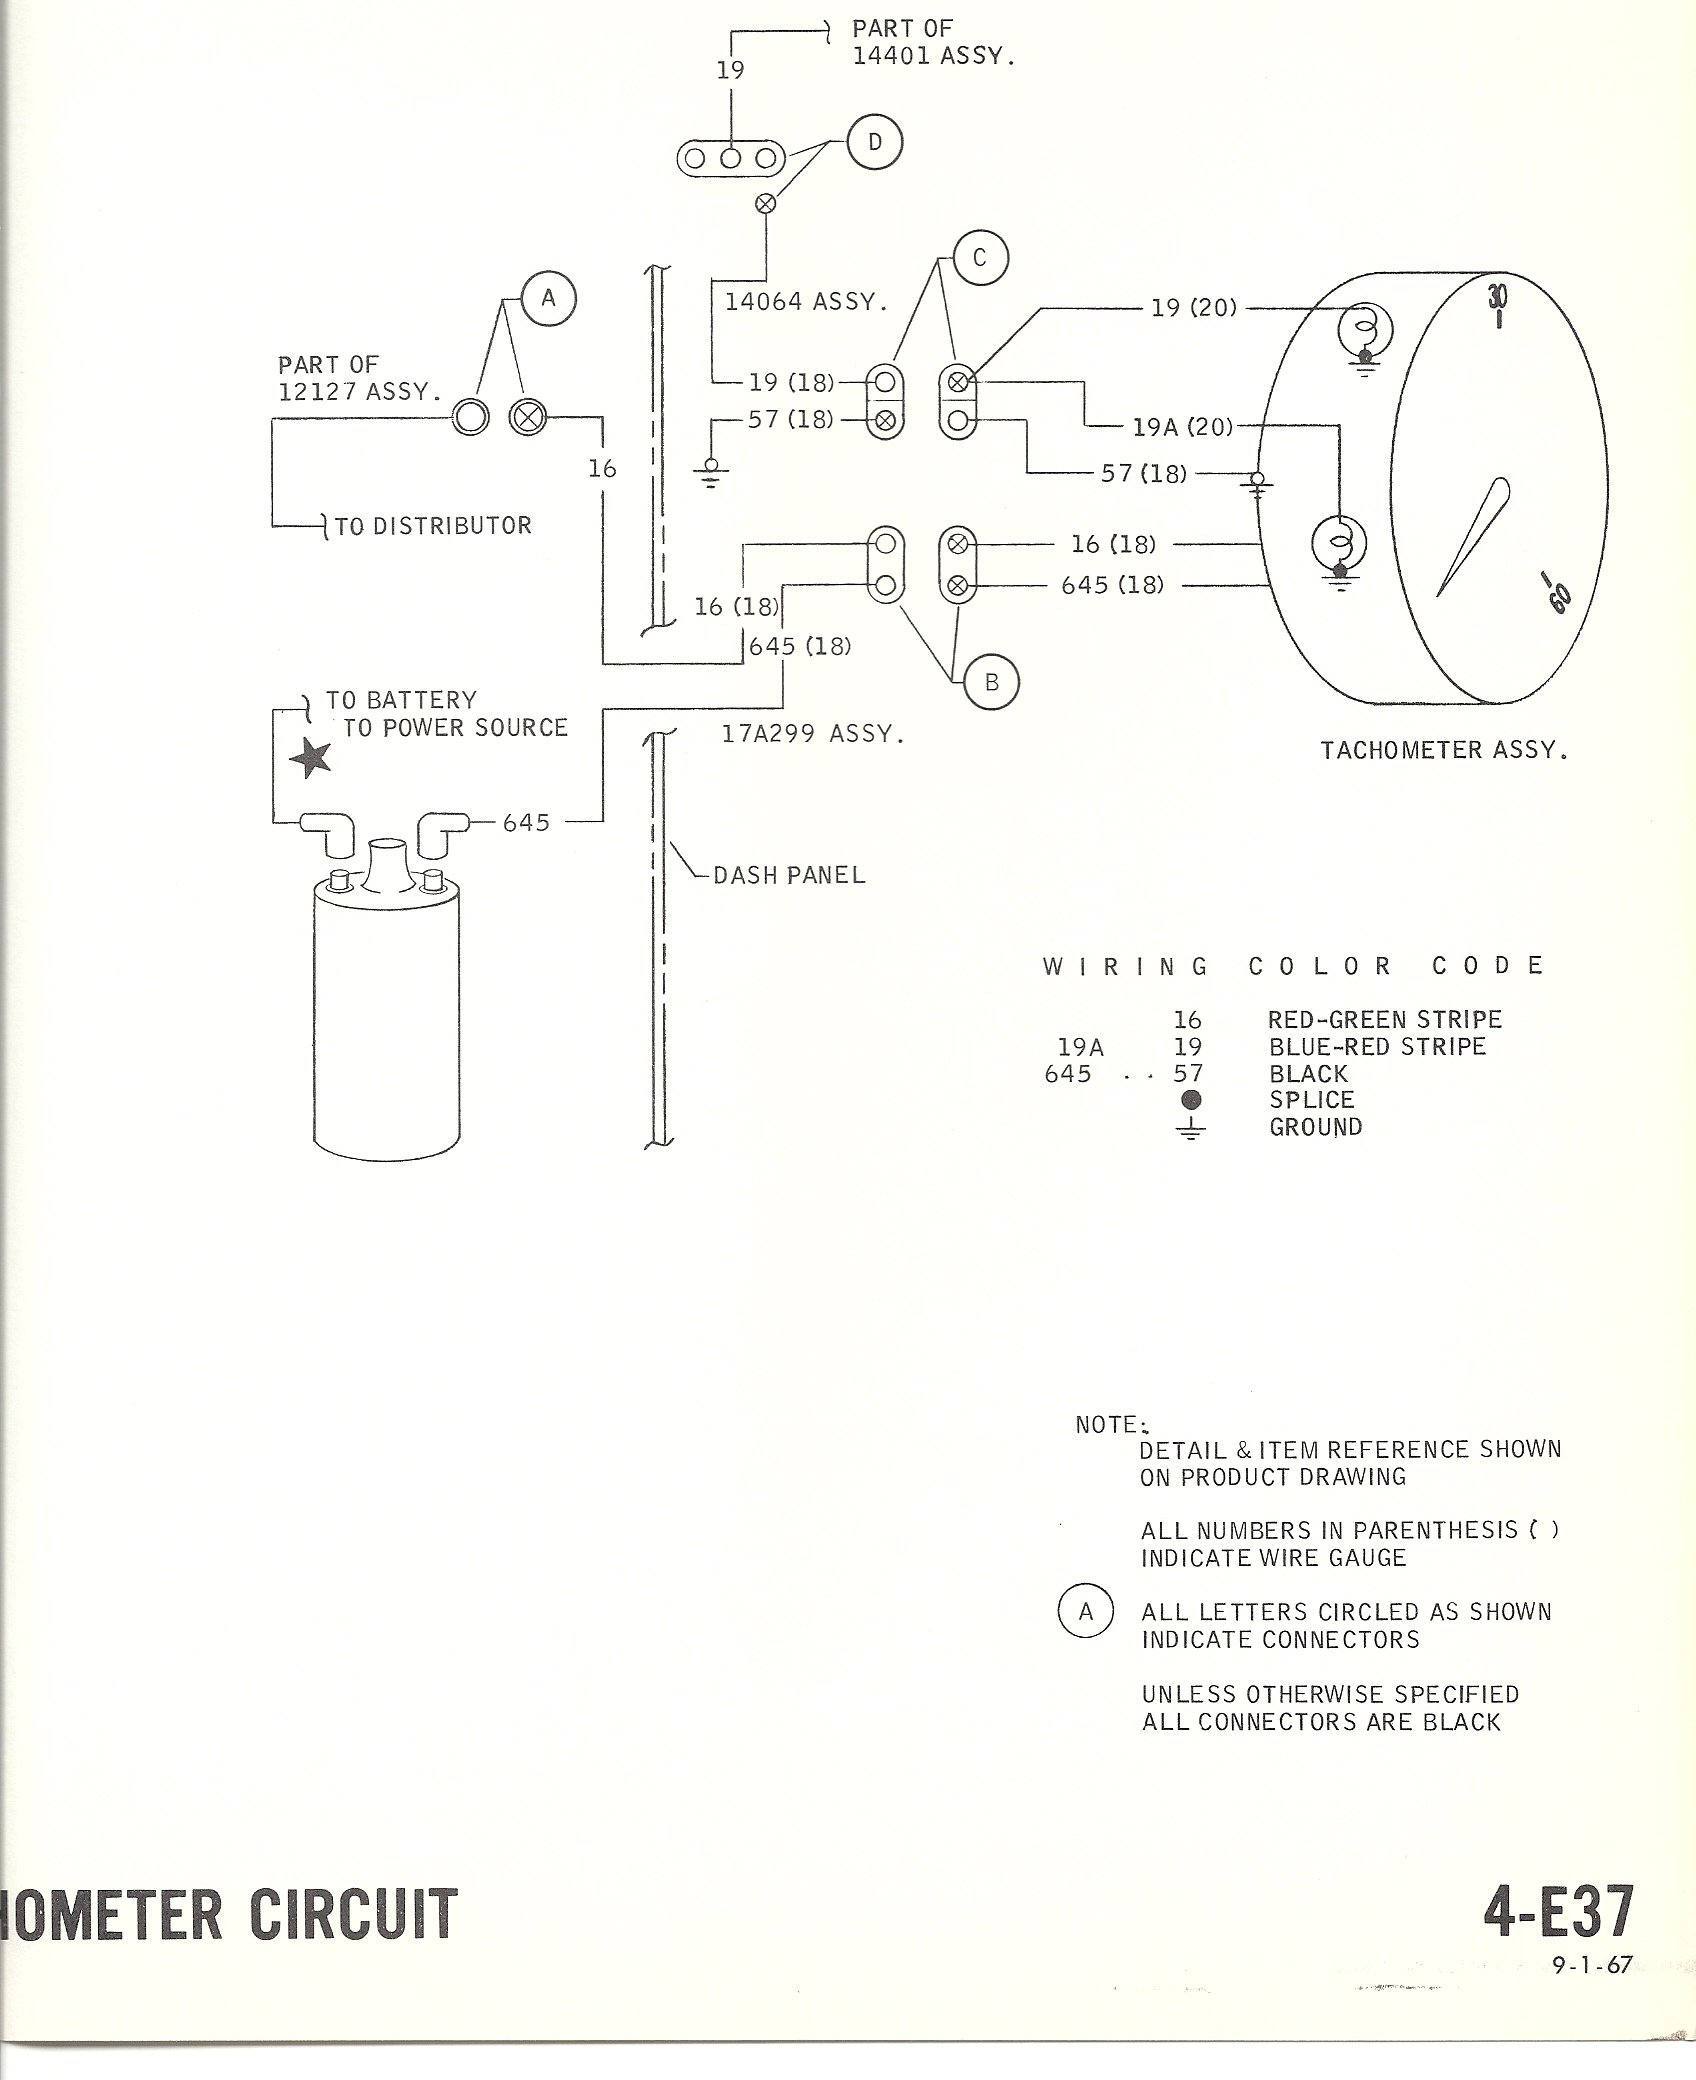 tachometer wiring diagram tachometer wiring diagram view diagram rh cccgroup co